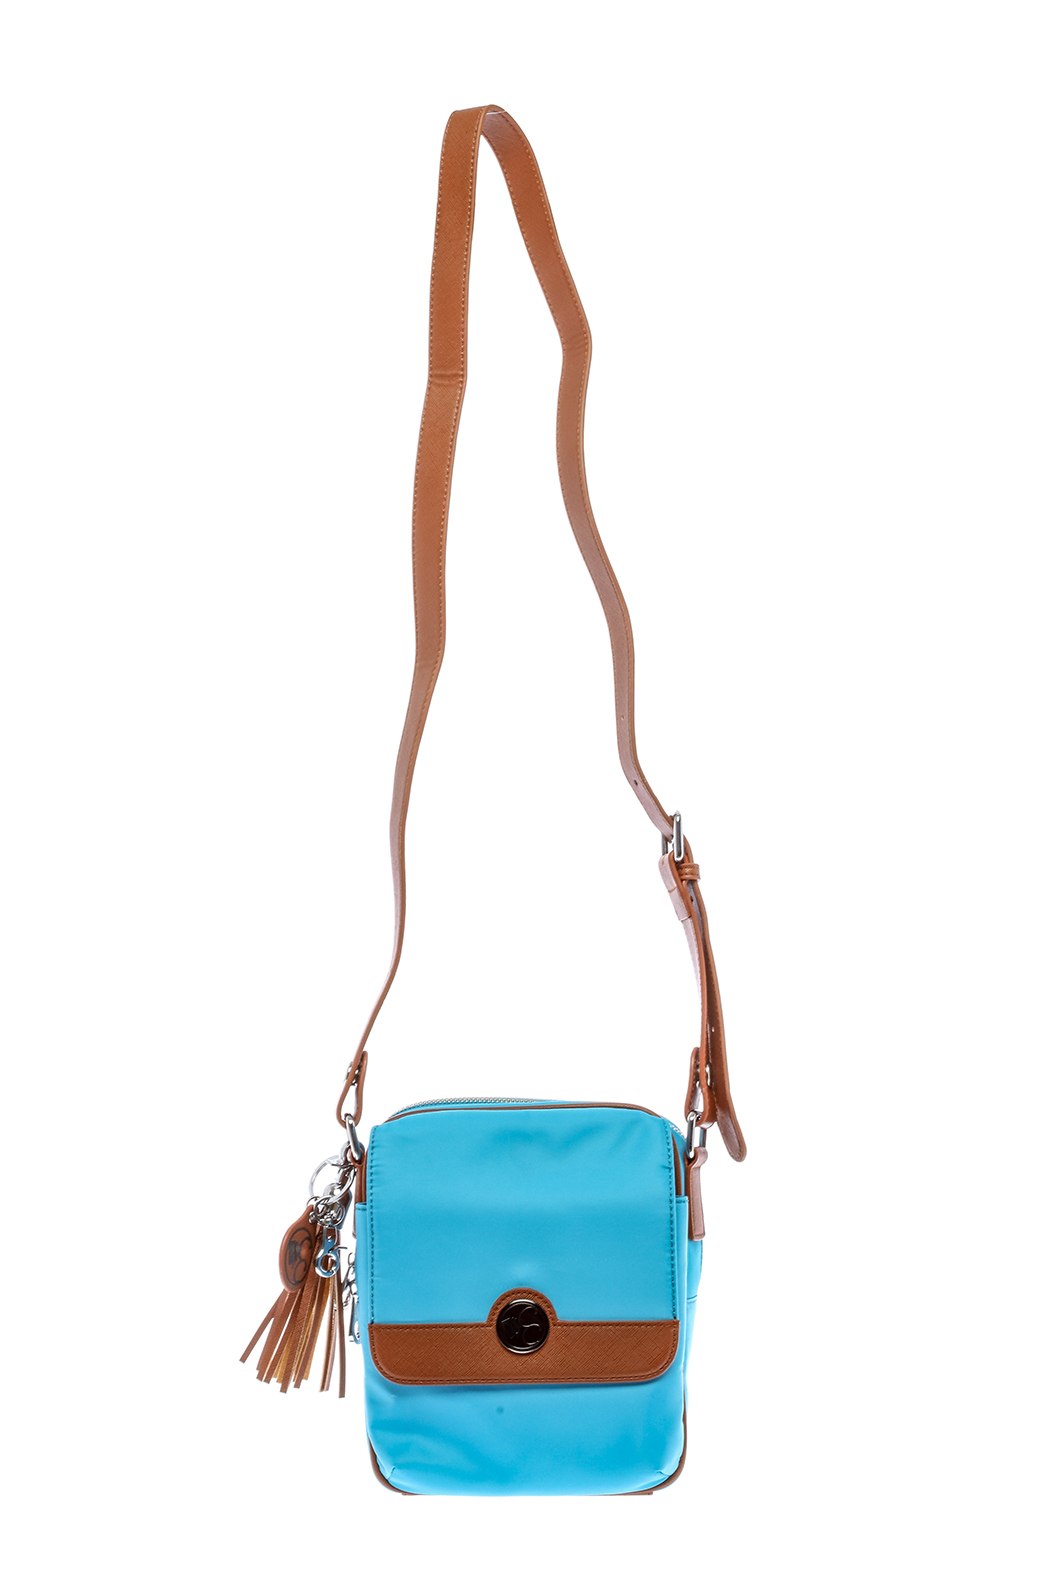 Concealed Carrie Blue Carrie Crossbody Bag - Main Image